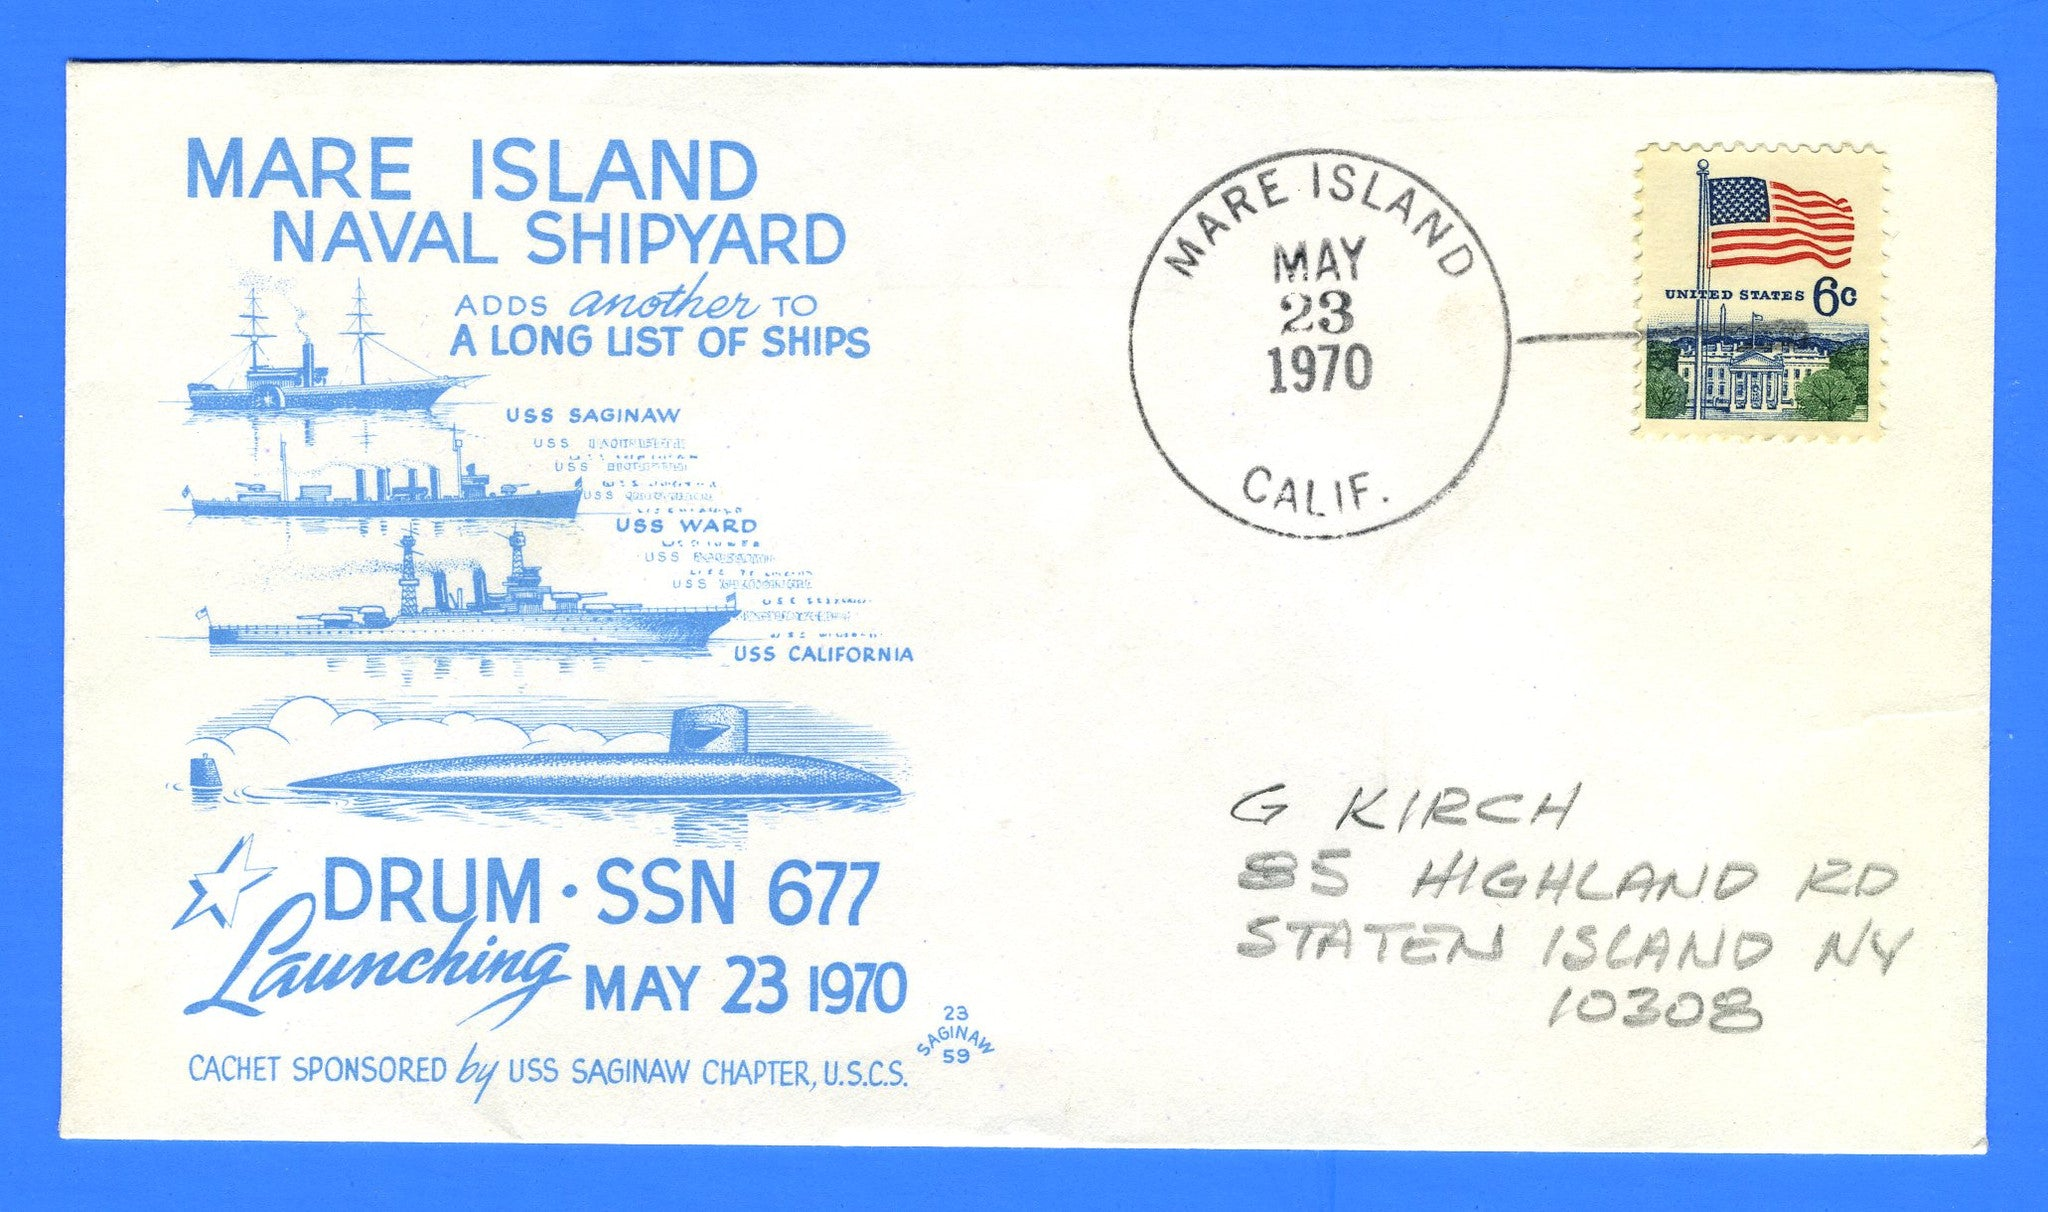 USS Drum SSN-677 Launched May 23, 1970 - Cachet Maker USCS Chapter 59 USS Saginaw